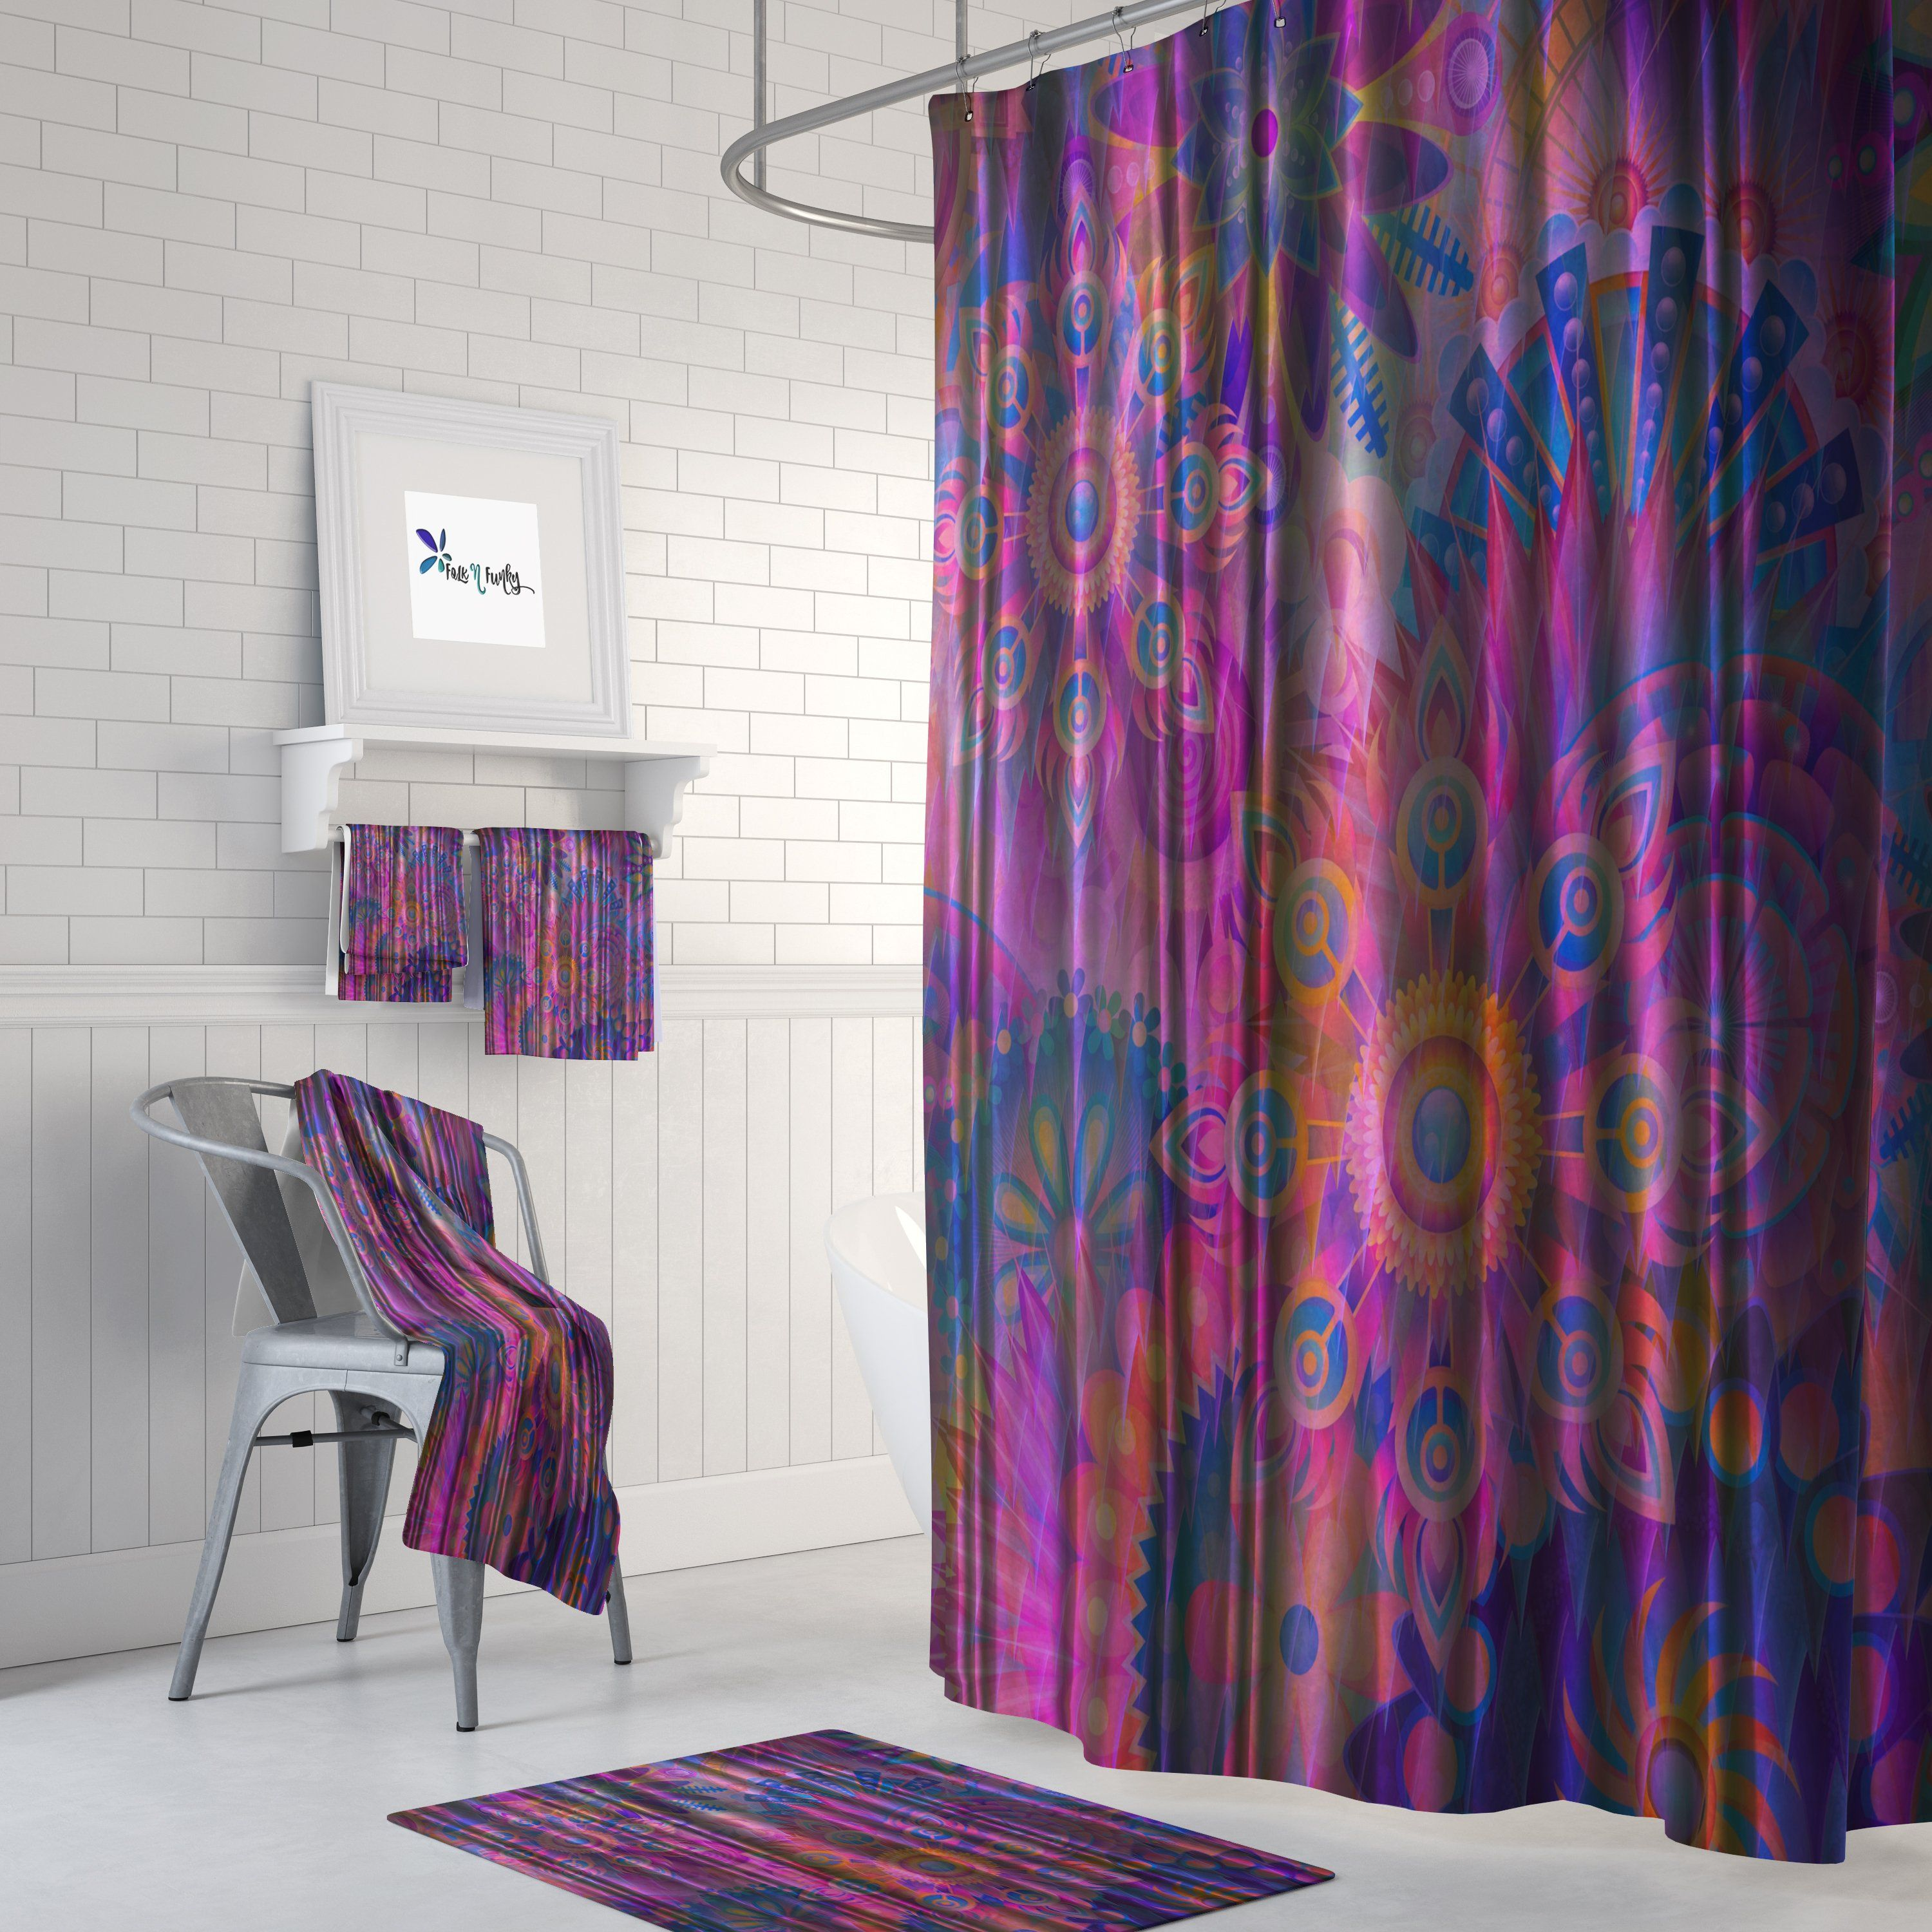 My Hippie Soul Shower Curtain Folk N Funky With Images Curtains Cheap Bathroom Accessories Shower Curtain